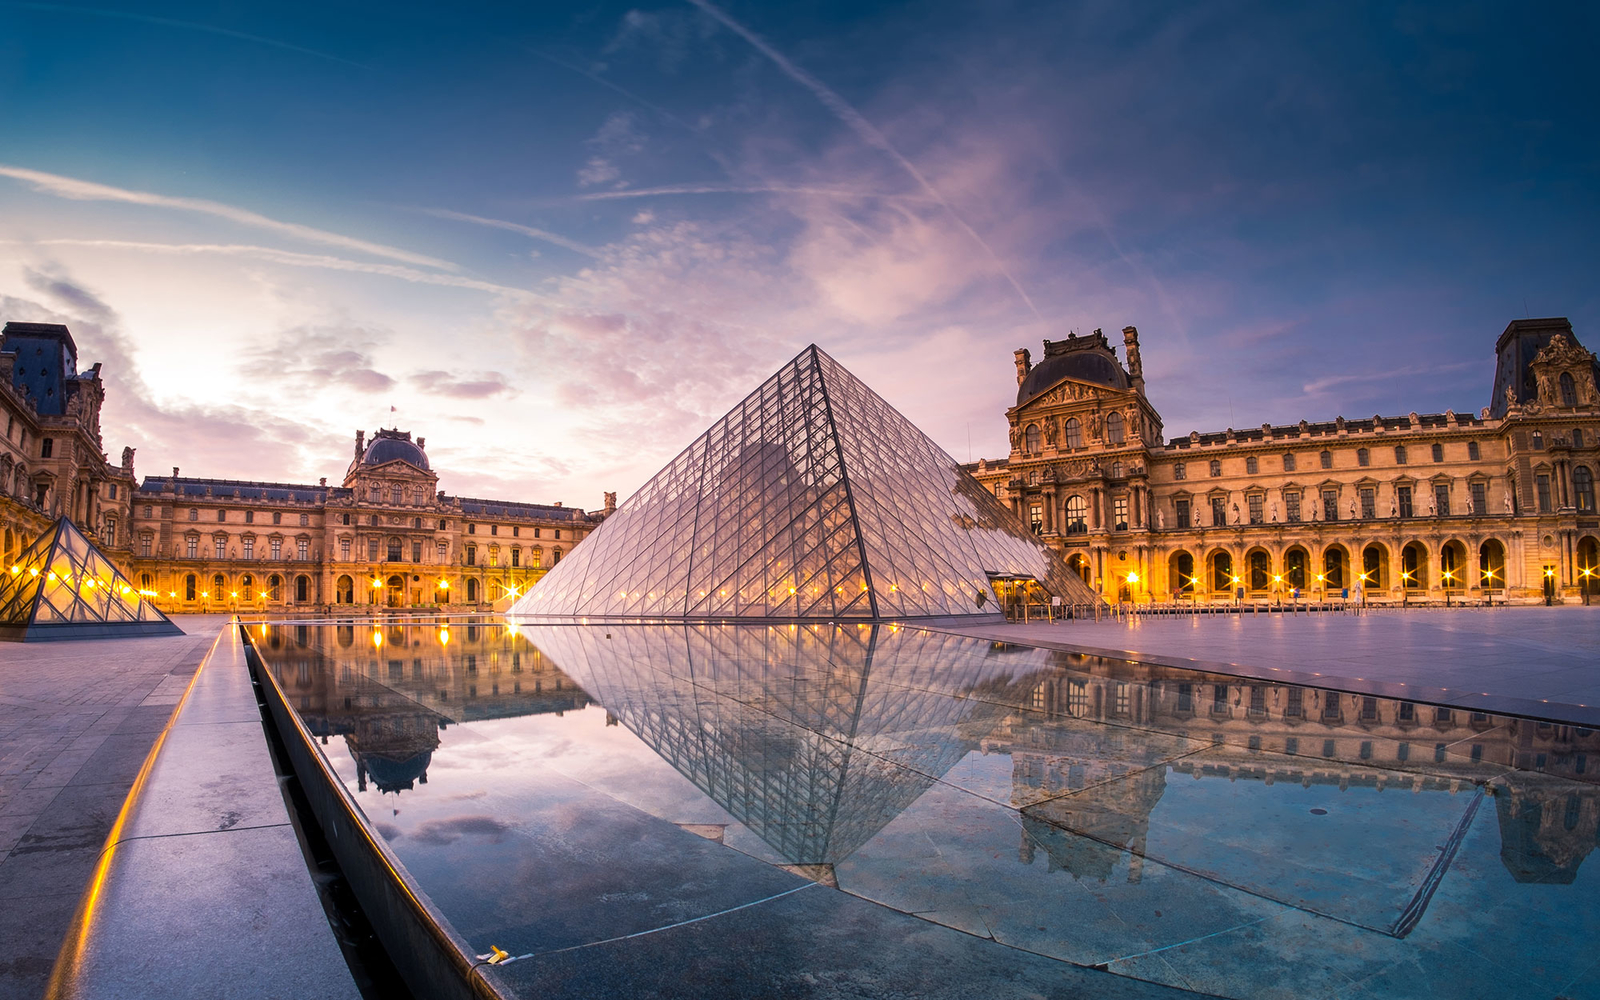 book now - CLICK THE BUTTON BELOW TO GRAB YOUR SPOT ON THIS SPECIAL PARIS GETAWAY